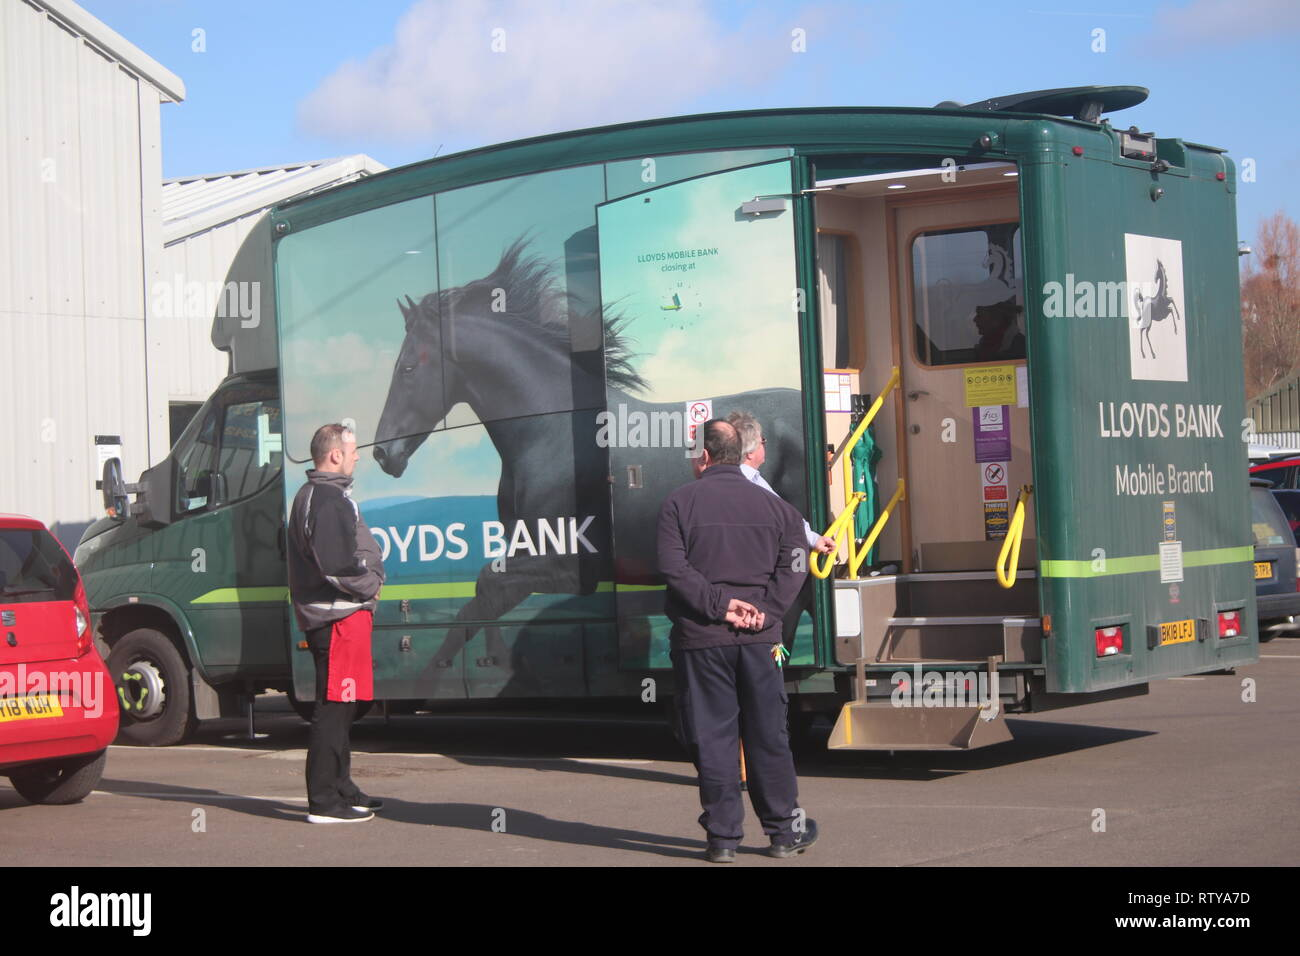 A MOBILE BANK OF LLOYDS BANK IN USE Stock Photo